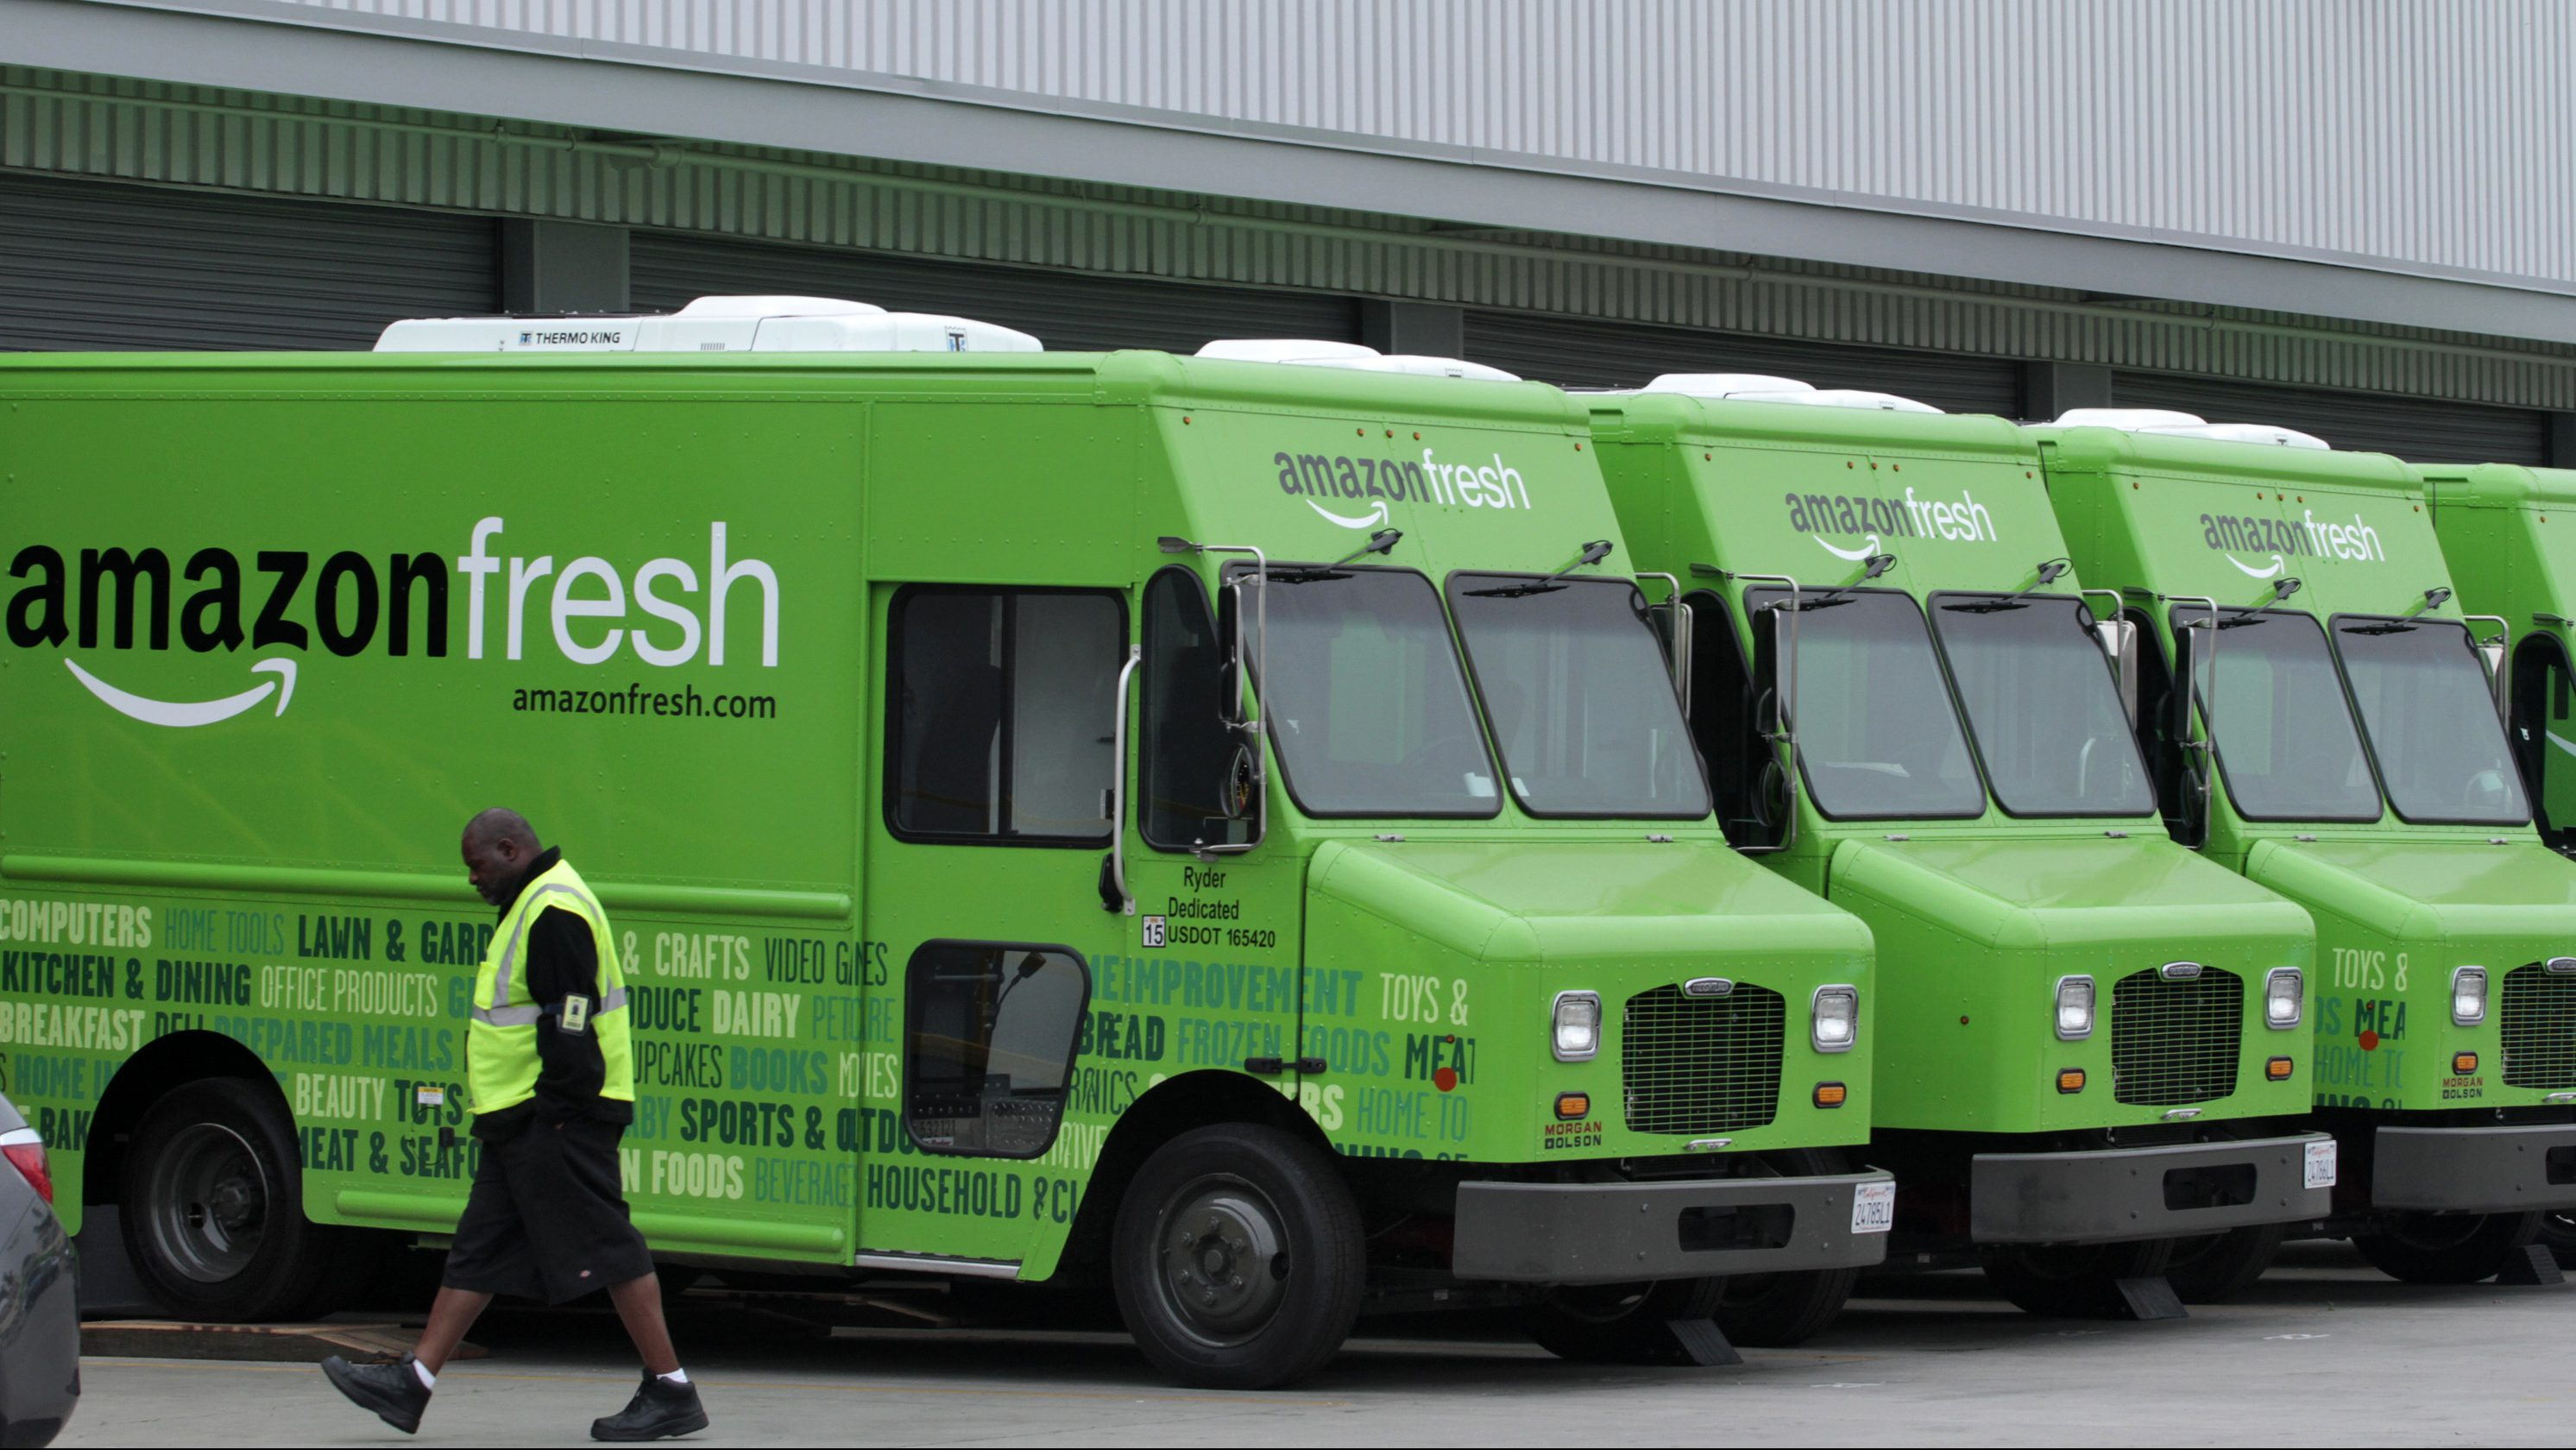 A worker walks past Amazon Fresh delivery vans parked at an Amazon Fresh warehouse in Inglewood, California, June 14, 2013. The online grocery start-up Webvan is rising from the dead--in the form of an online grocery business called Amazon Fresh. Picture taken June 14, 2013.